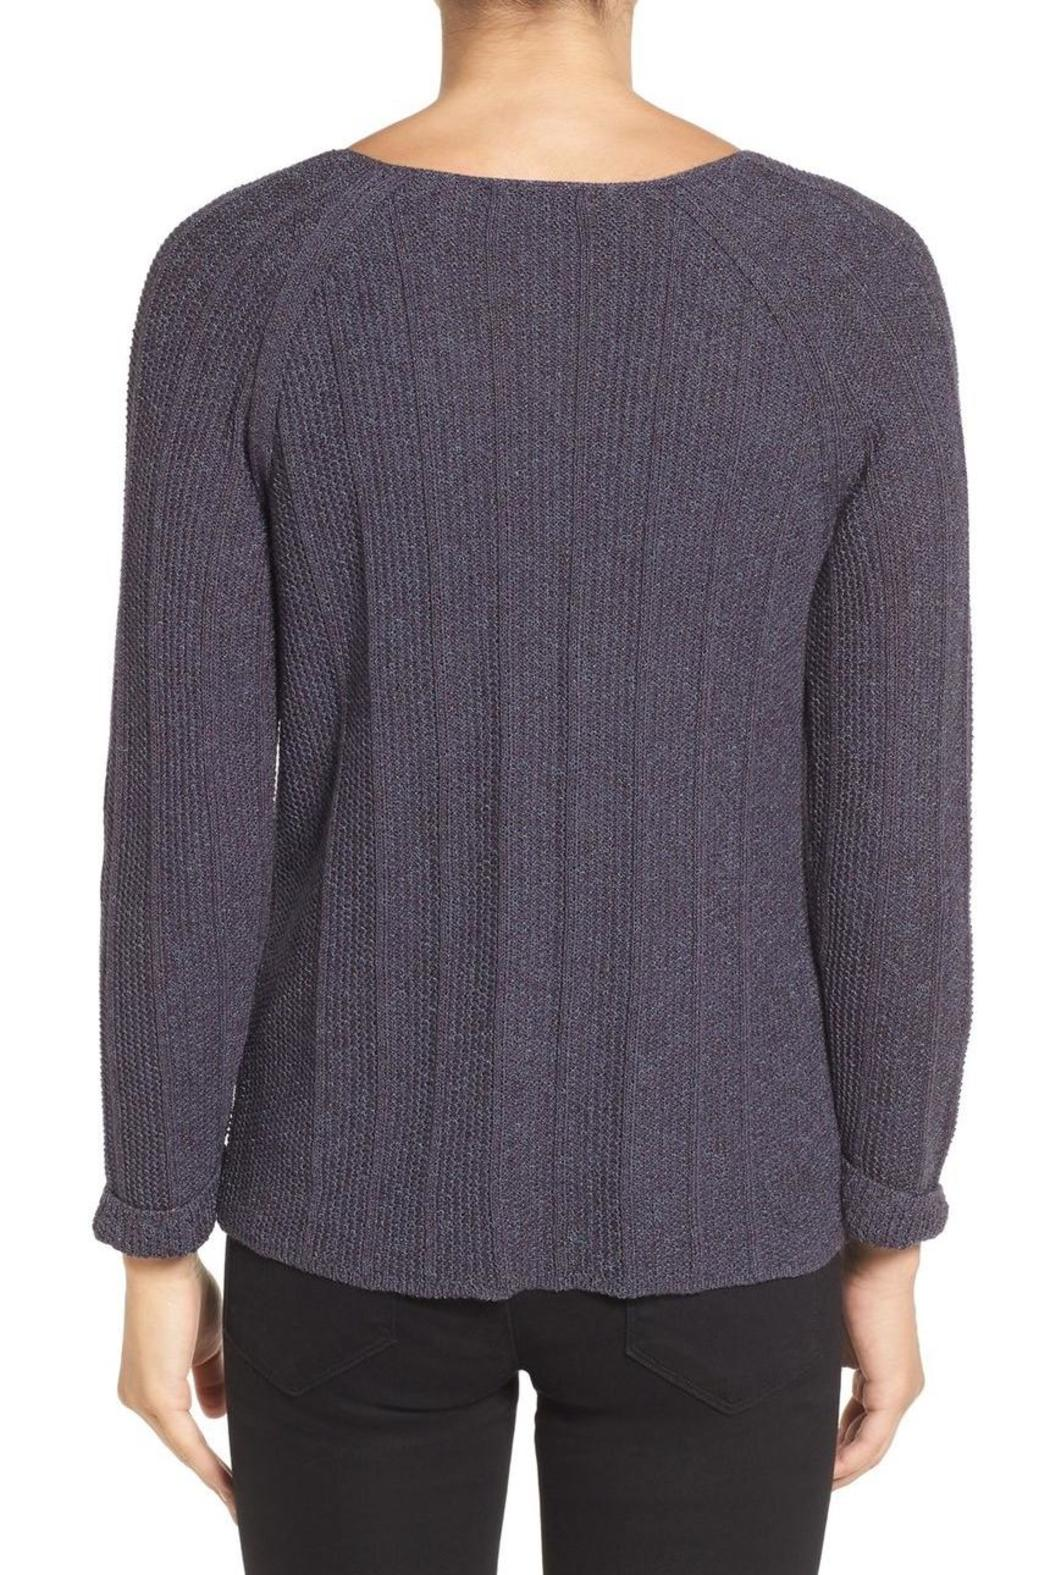 Nic + Zoe Knit Pop Top - Side Cropped Image